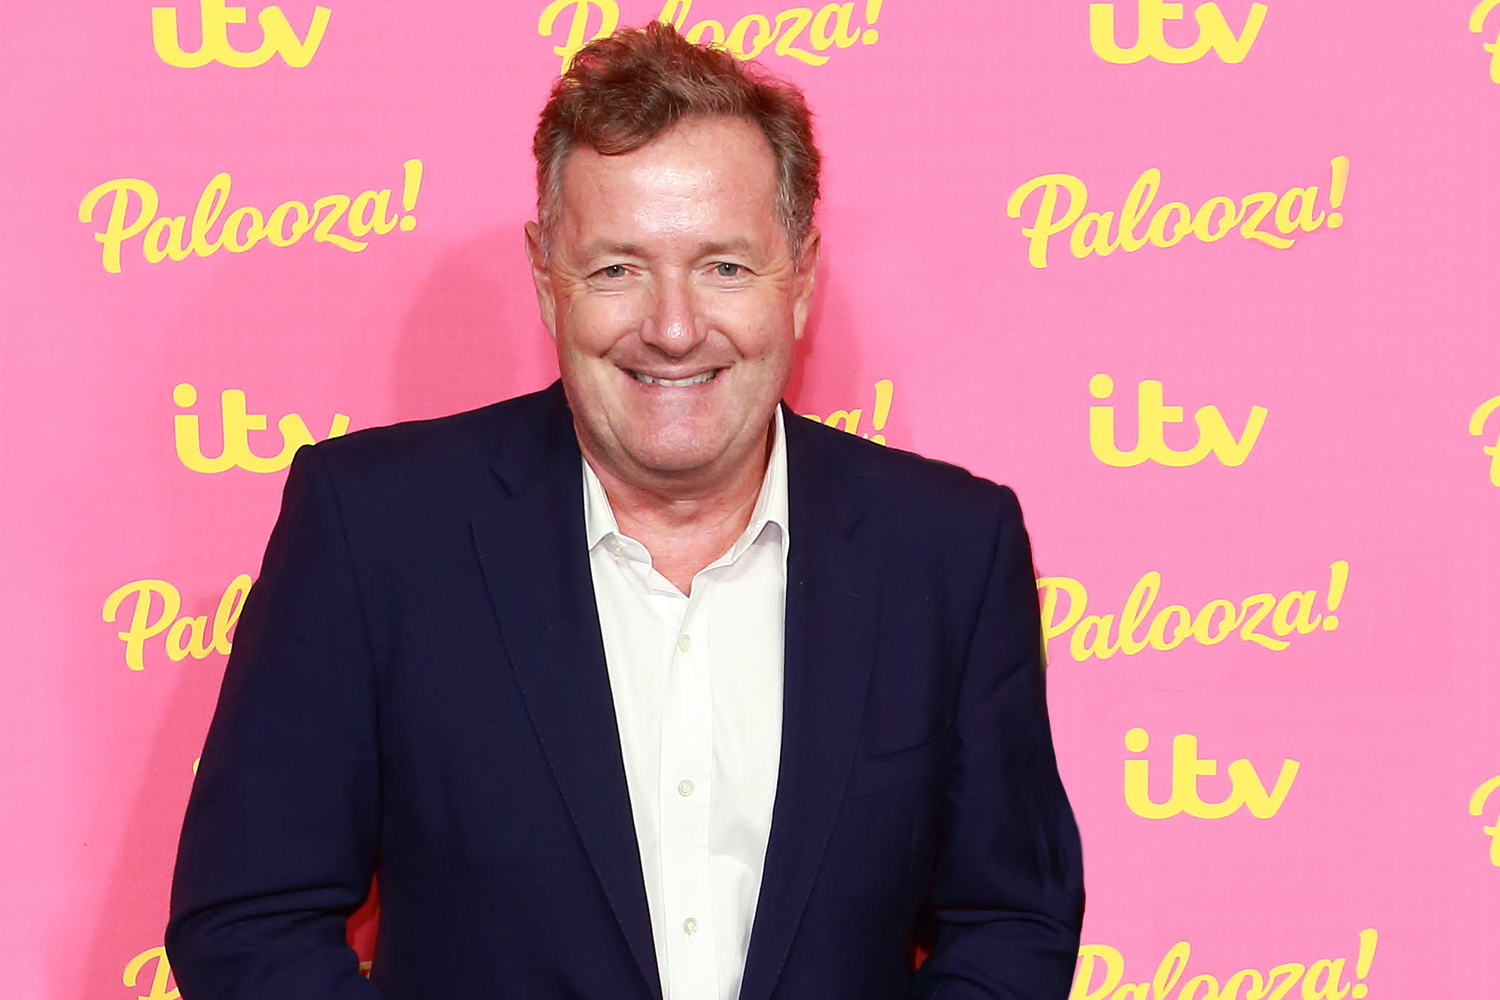 17 Piers Morgan tweets about the NHS and coronavirus that we all agree with